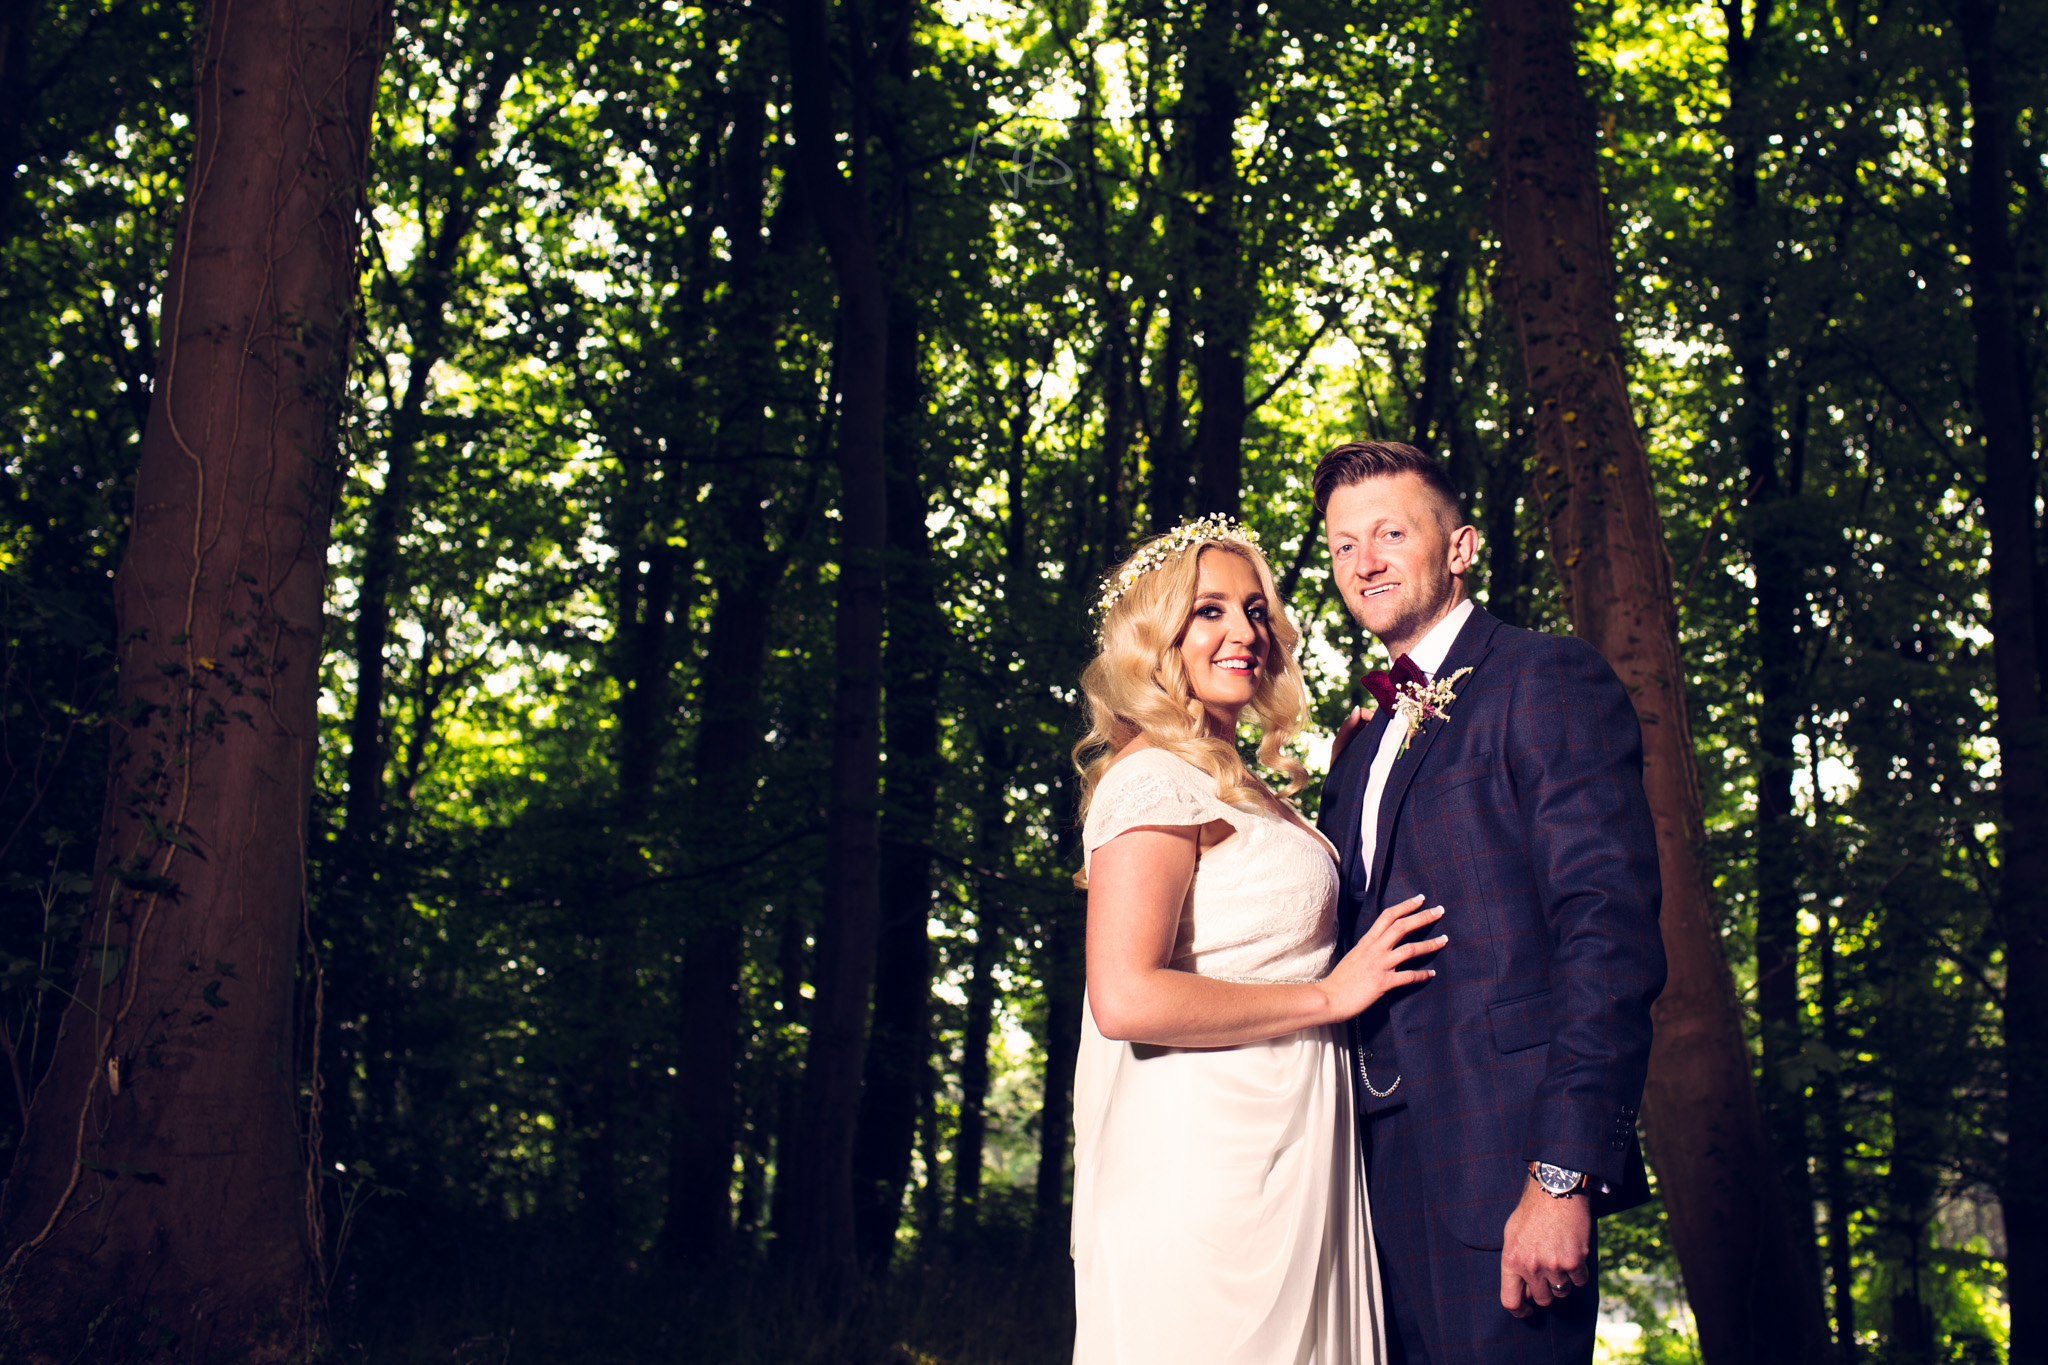 Northern_Ireland_Wedding-Photographer-Mark-Barnes-Newry_wedding_Photography-Katie&Darren-42.jpg